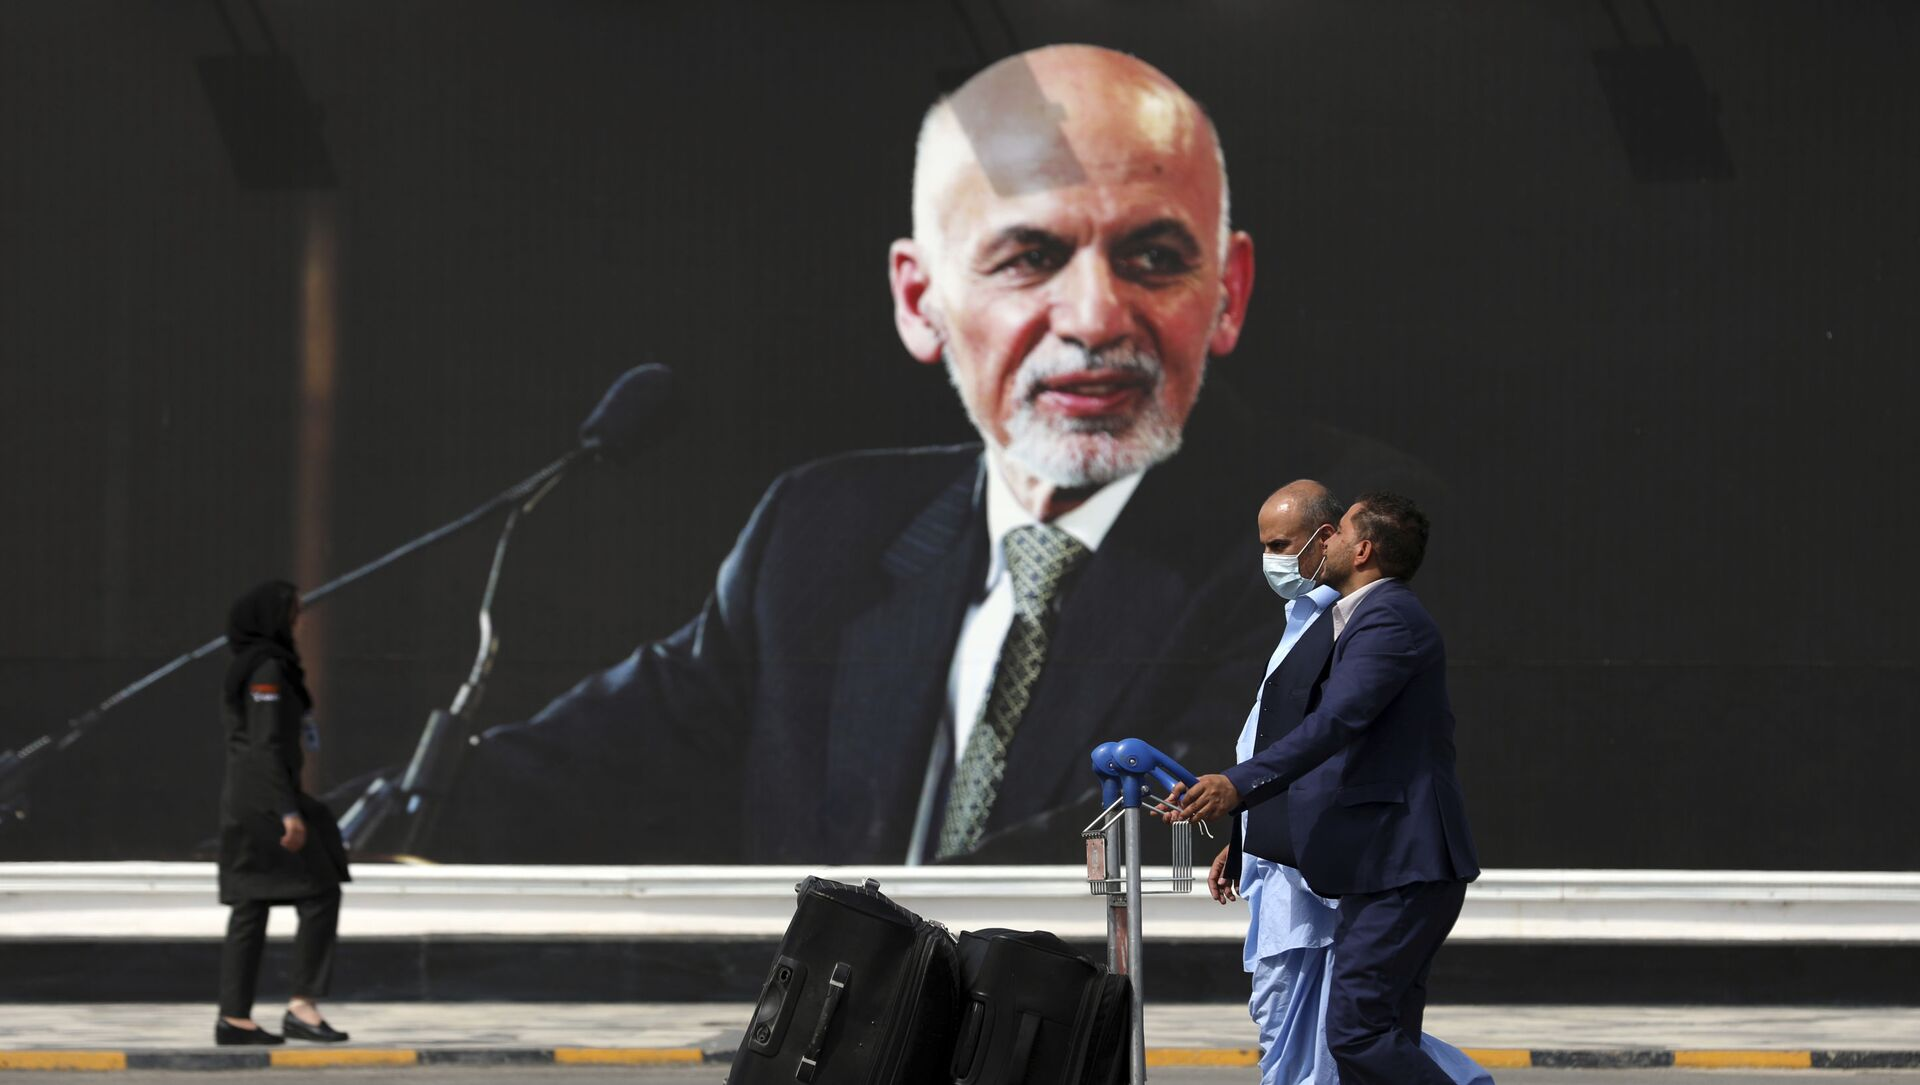 Passengers walk to the departures terminal of Hamid Karzai International Airport in Kabul, Afghanistan, on Saturday, Aug. 14, 2021, past a mural of President Ashraf Ghani, as the Taliban offensive encircled the capital. - Sputnik International, 1920, 22.08.2021